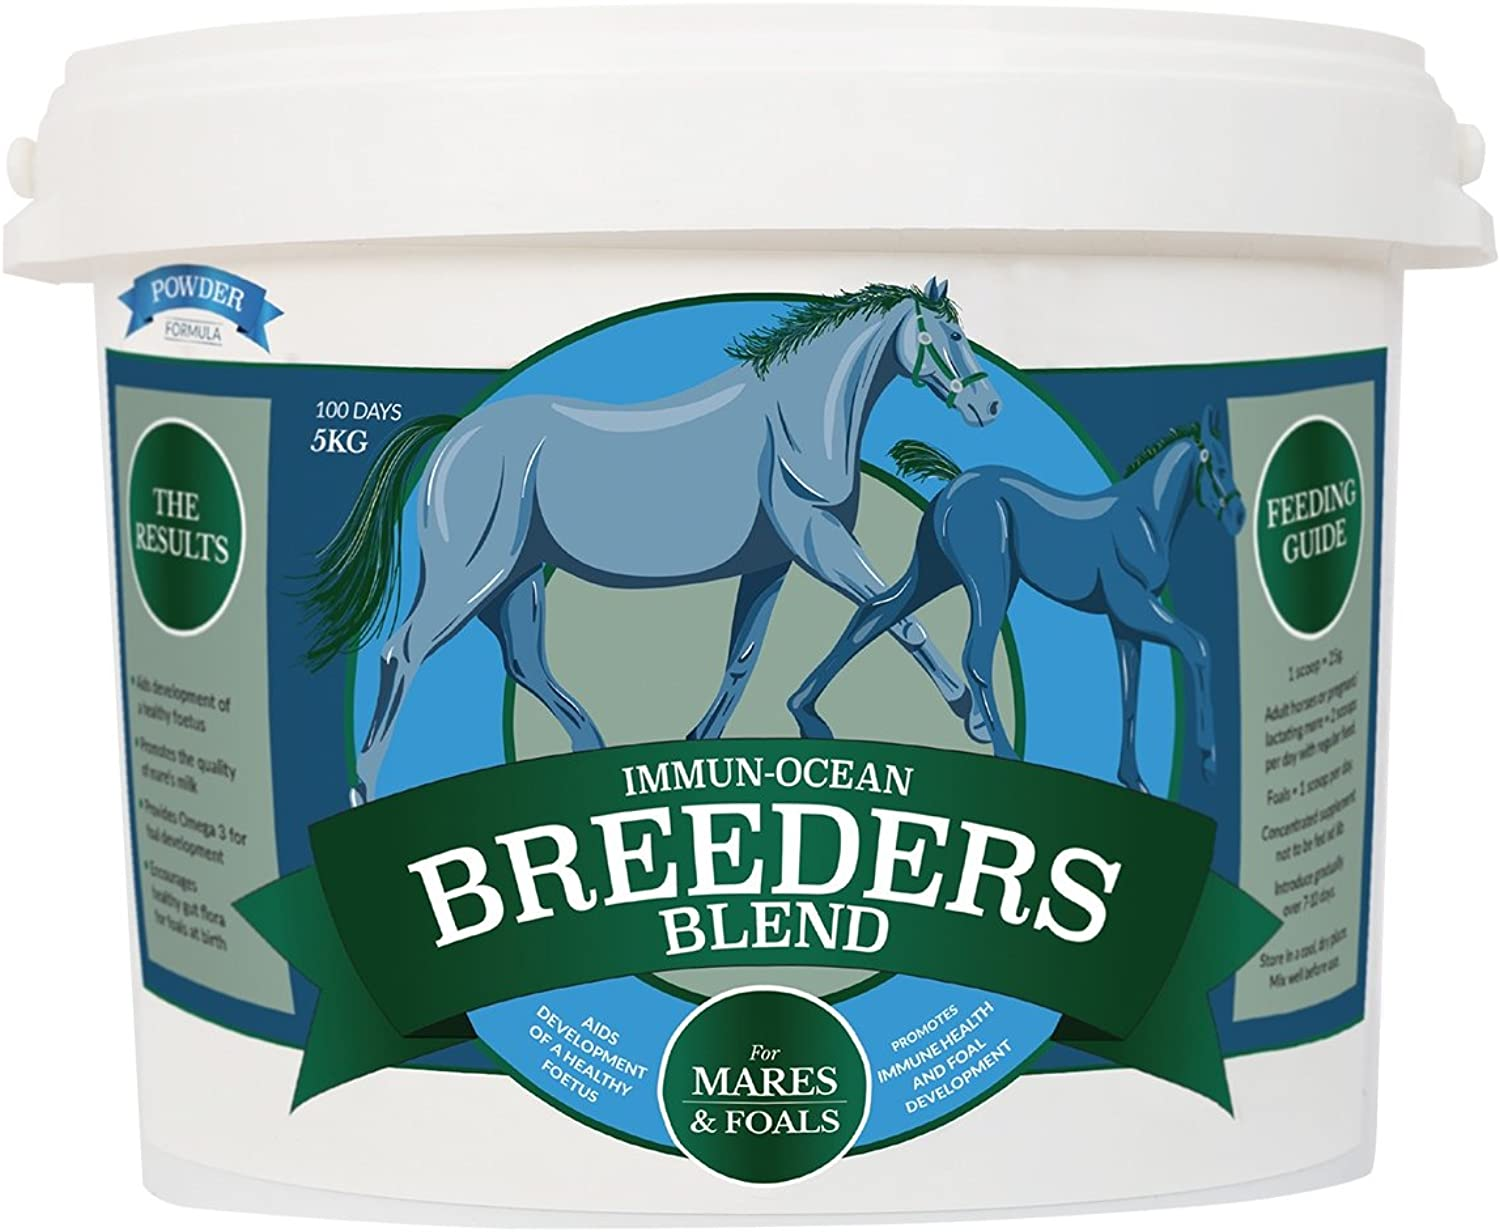 ImmunOcean 100% Natural Premium Horse Supplement Breeders Blend Powder 5KG  Marcro Algae + Balanced Vitamins Minerals = Better Foal Developement & Improved Conception Rates